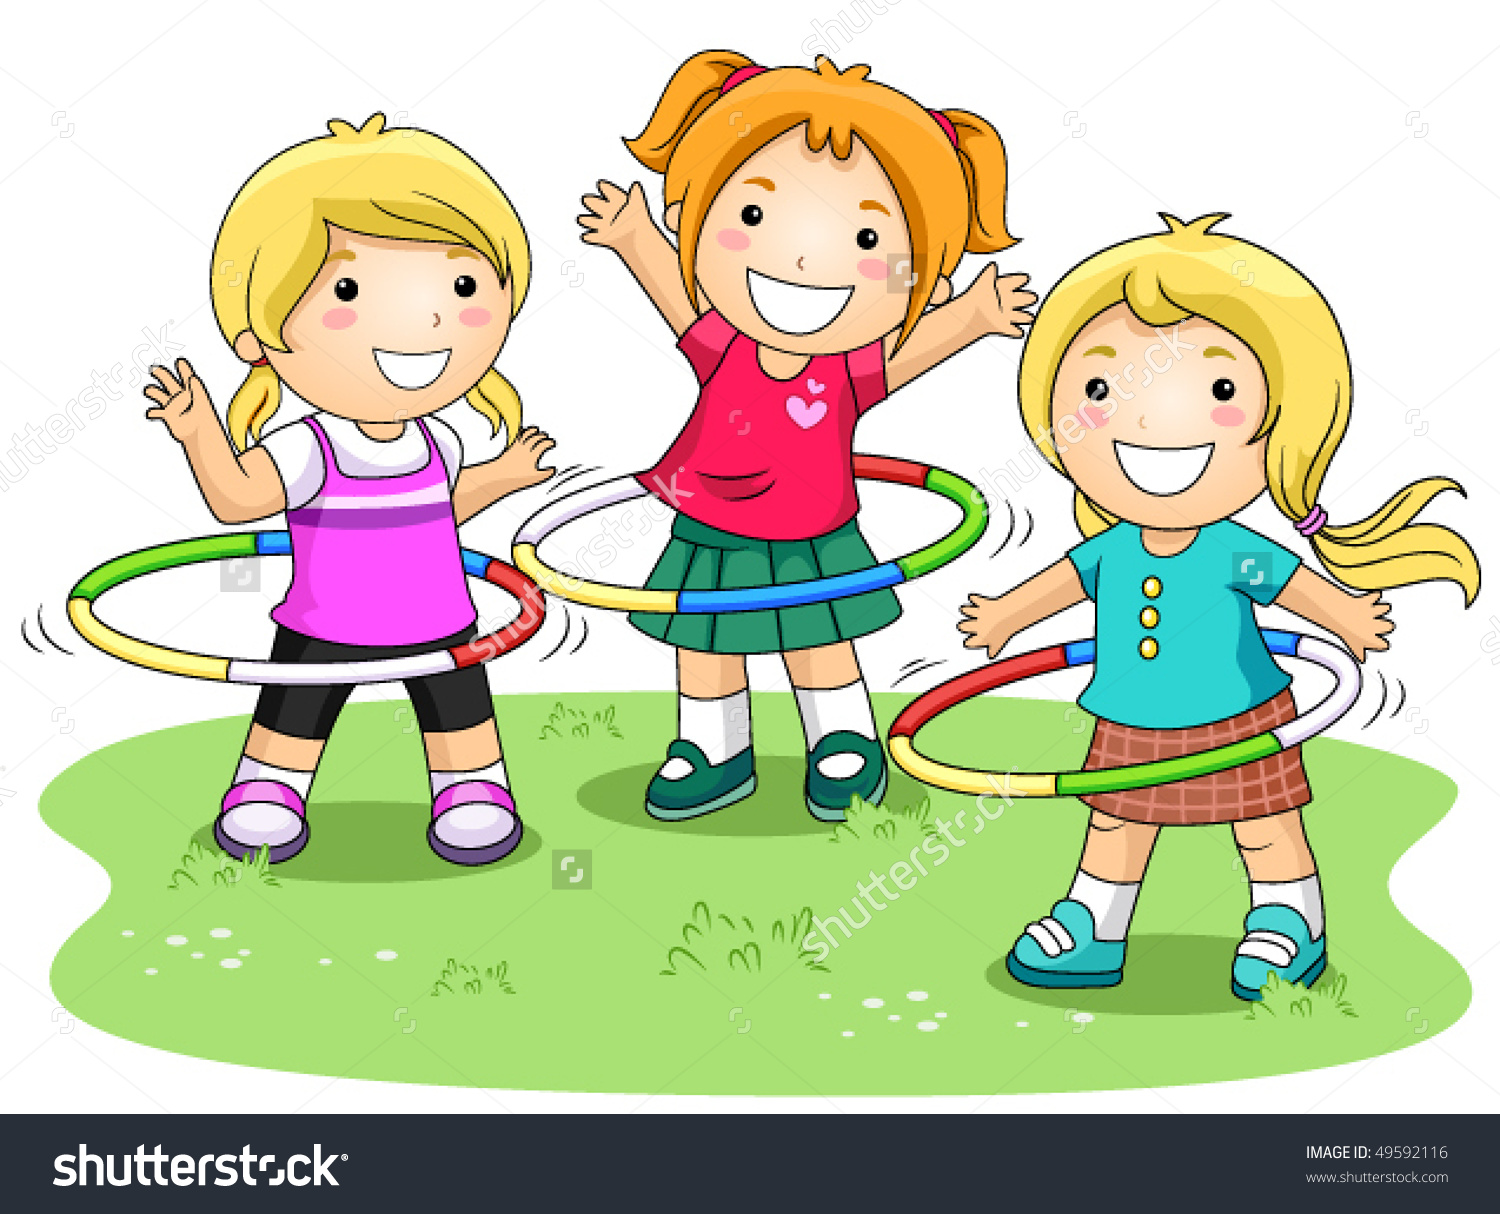 vector freeuse stock Kids playing outside clipart. Children station